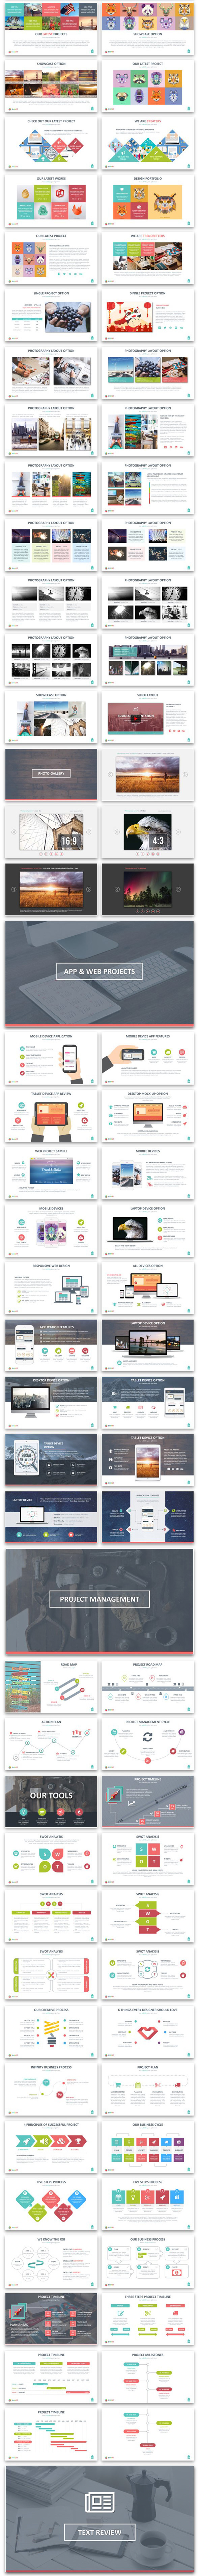 UNIVERSE - Multipurpose PowerPoint Template - 1